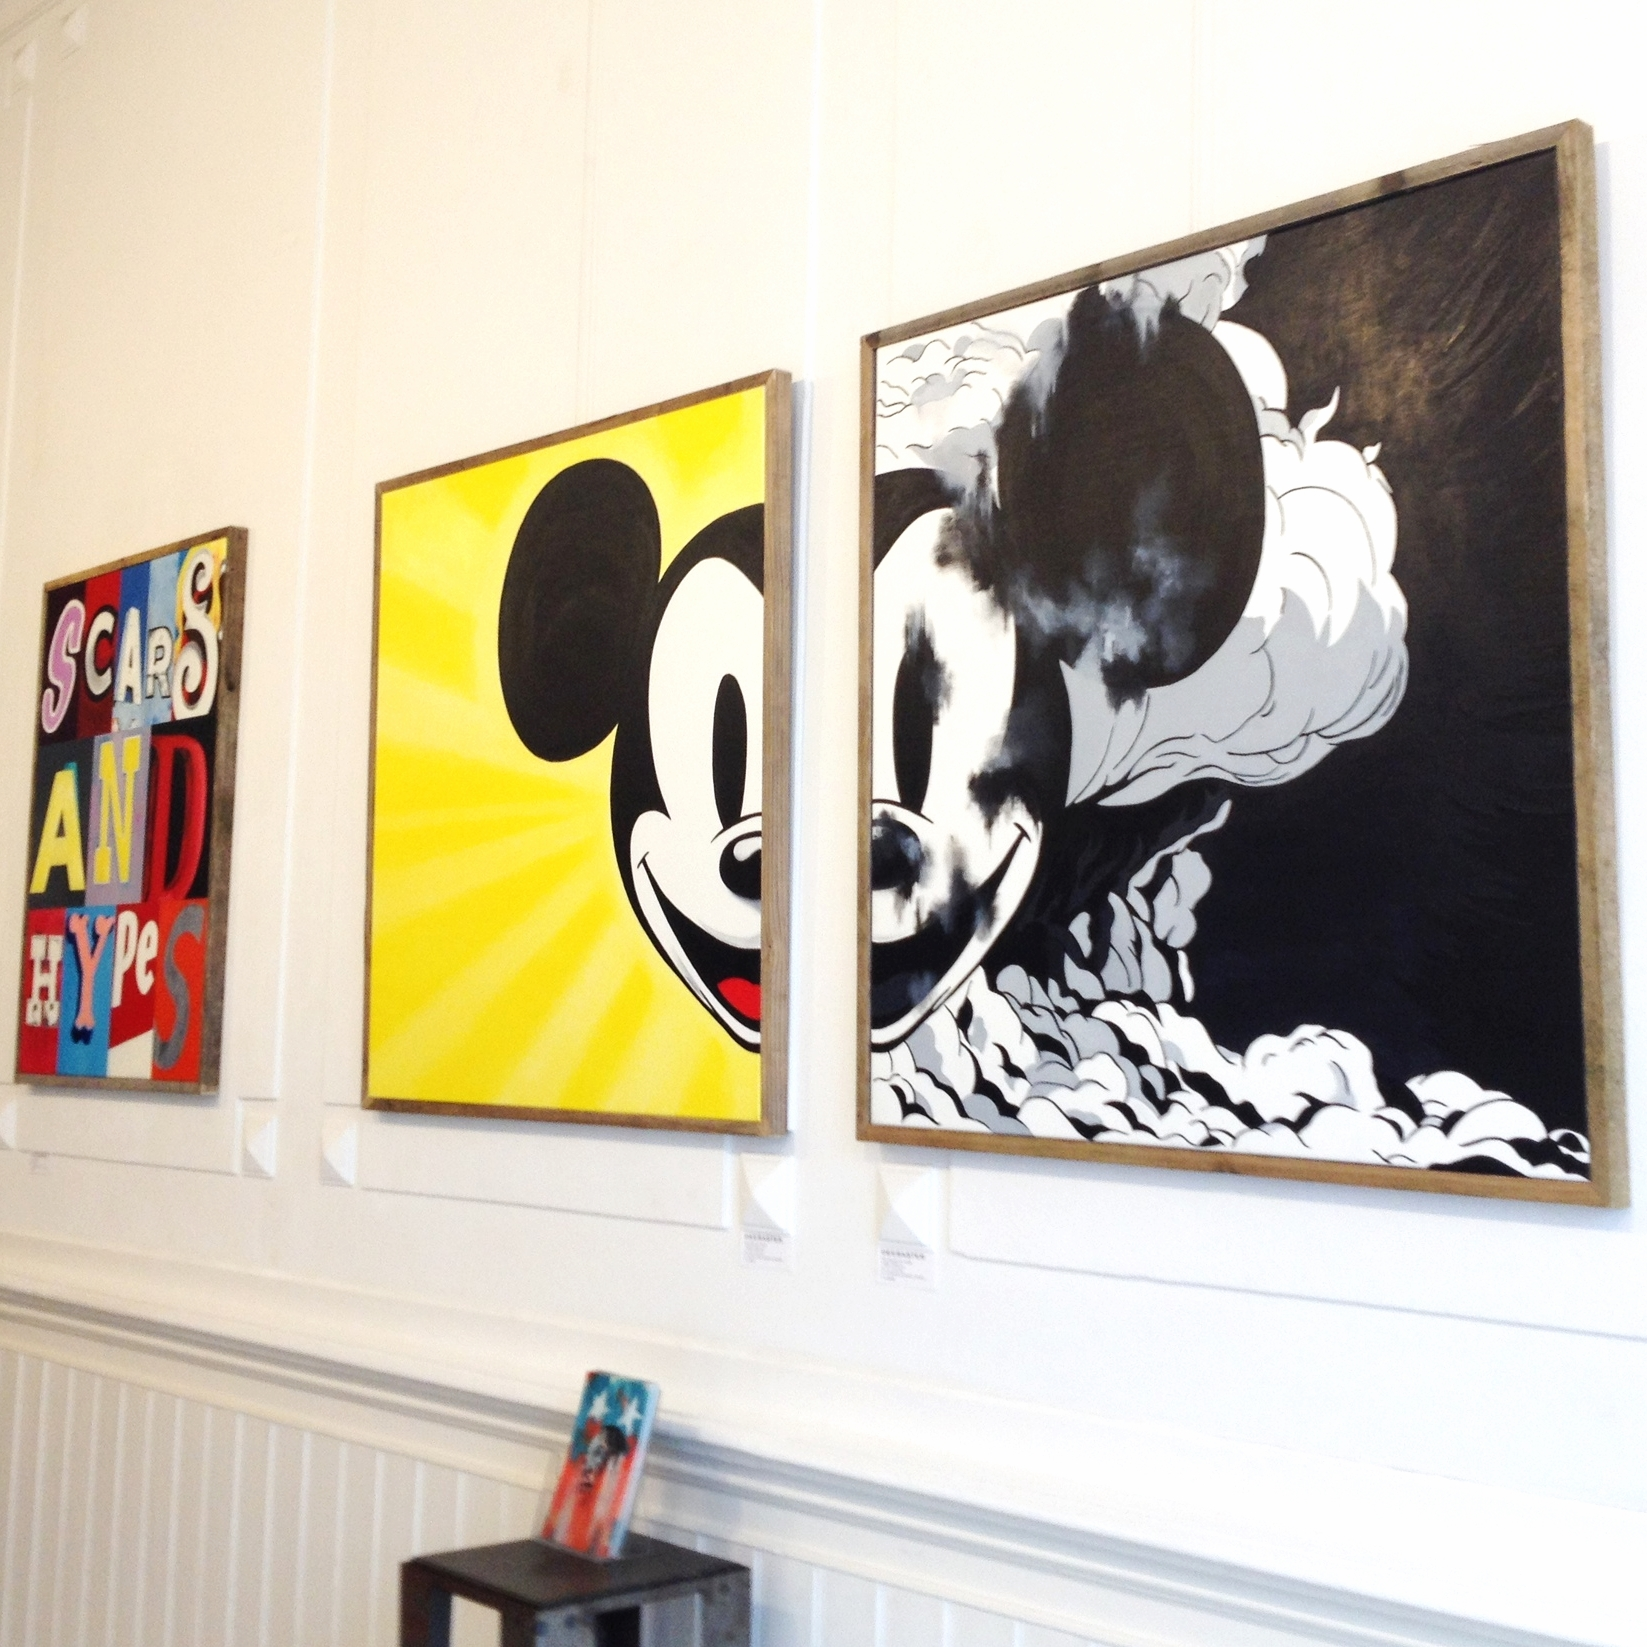 We love the work by  deesaster  - exhibition at  GoGallery .